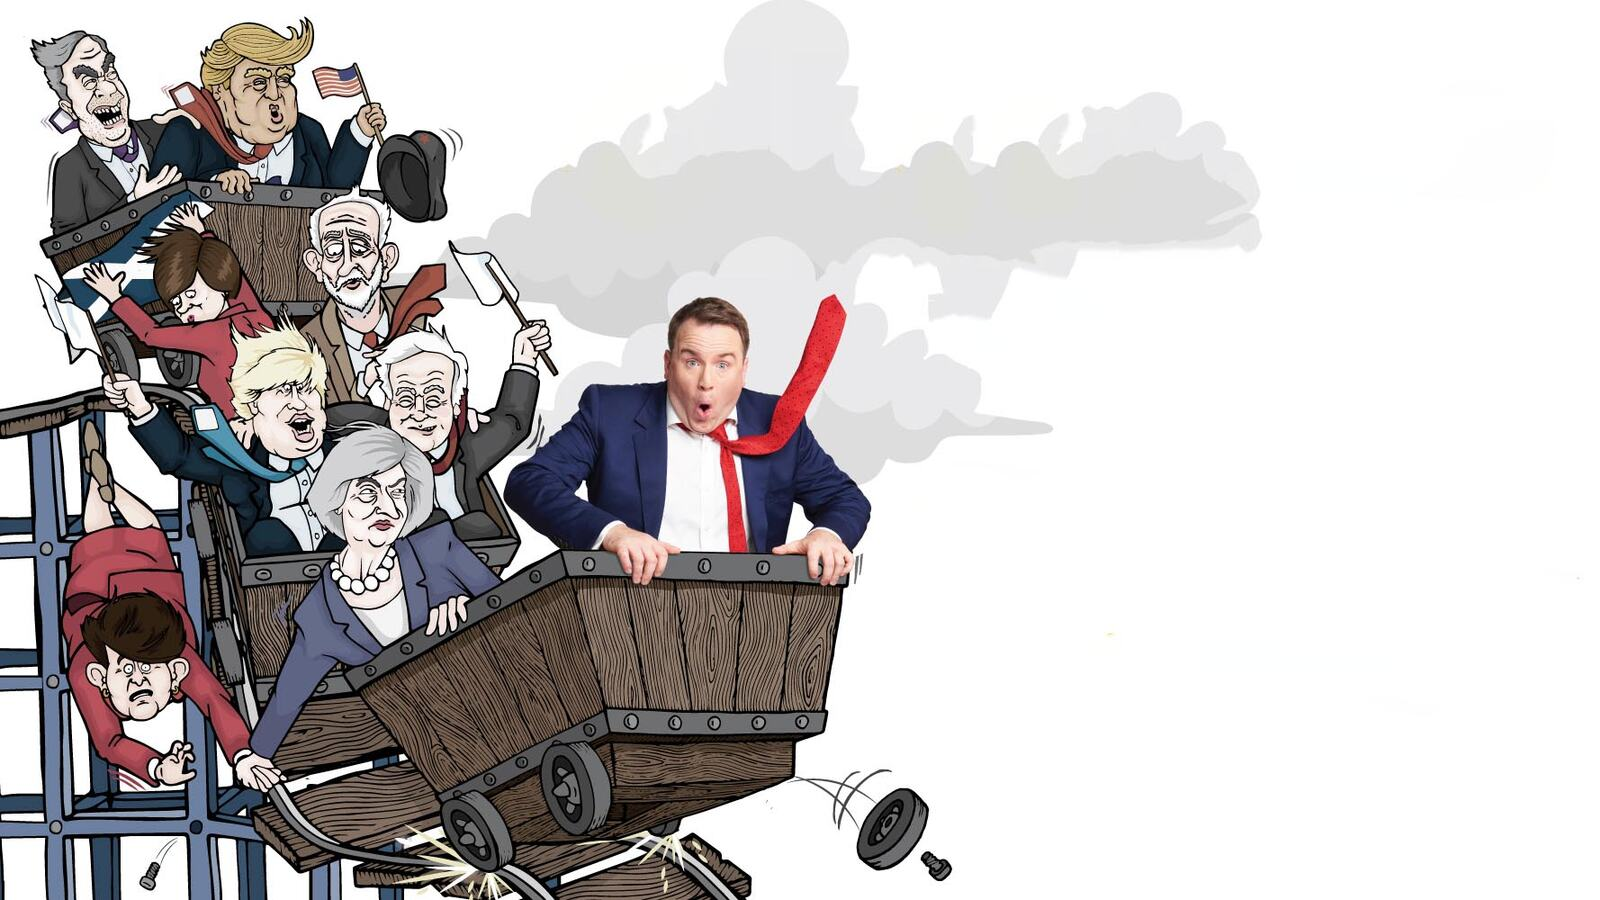 Illustration of Matt Forde riding a rollercoaster with political figures